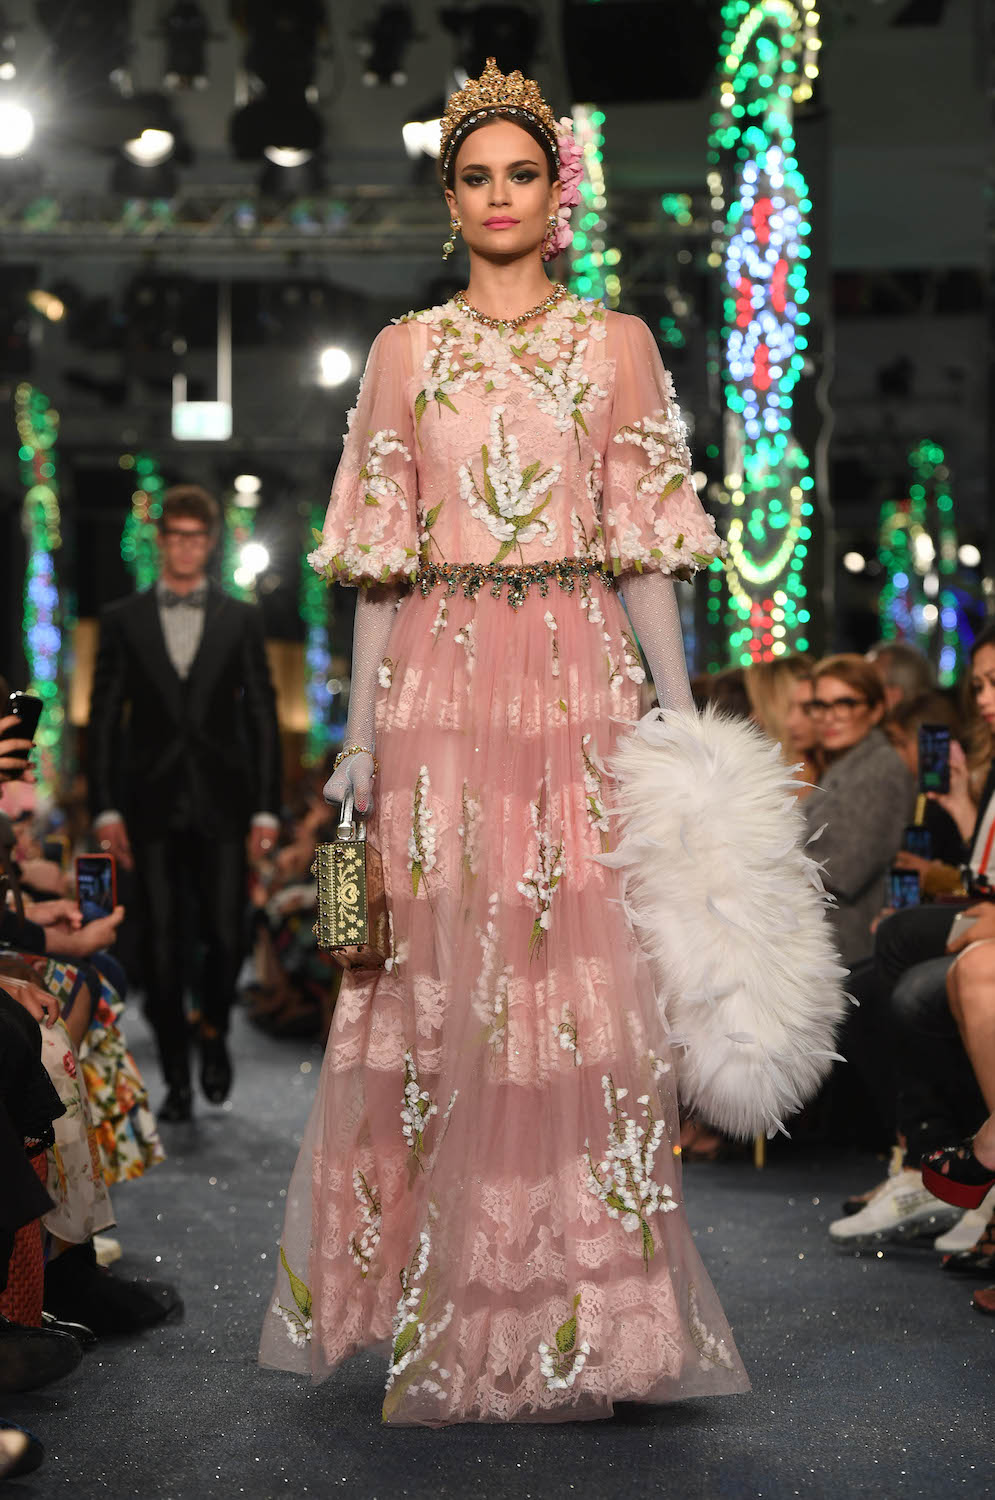 Dolce & Gabbana Dazzles Dubai with Dinner and a Show